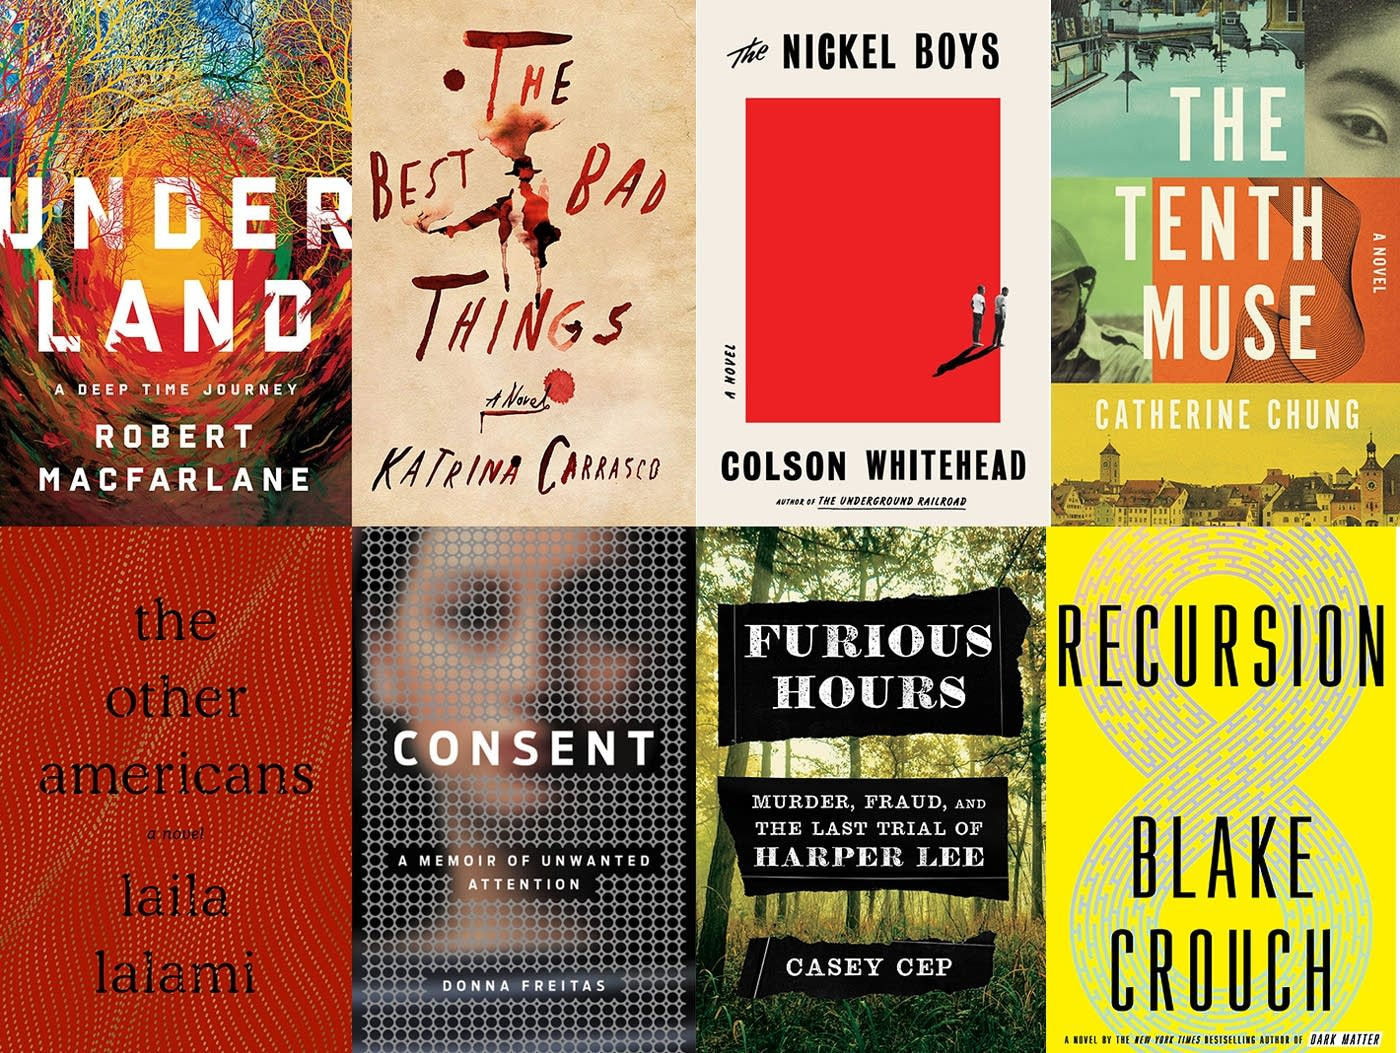 Summer reading recommendations.